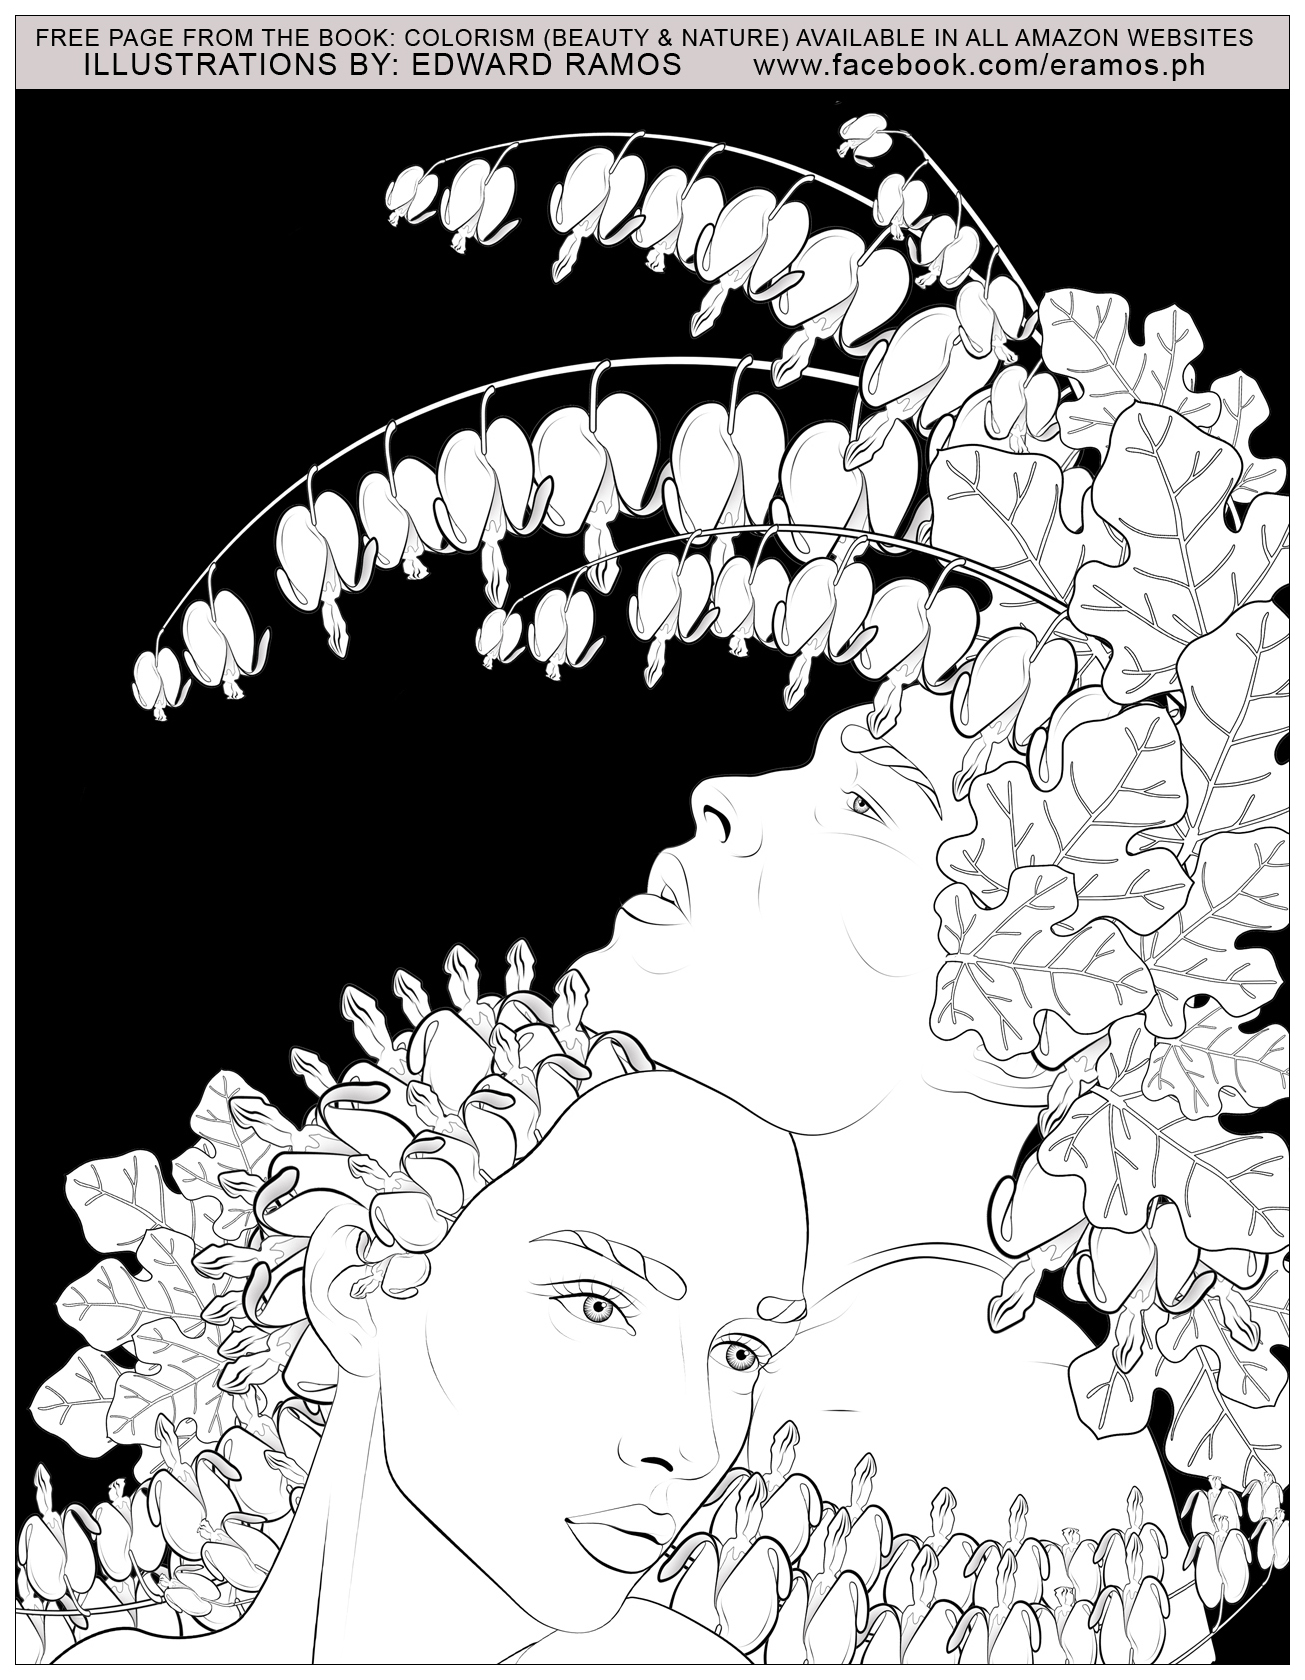 Illustration from the book Colorism - Beauty & Nature by Edward Ramos - 14